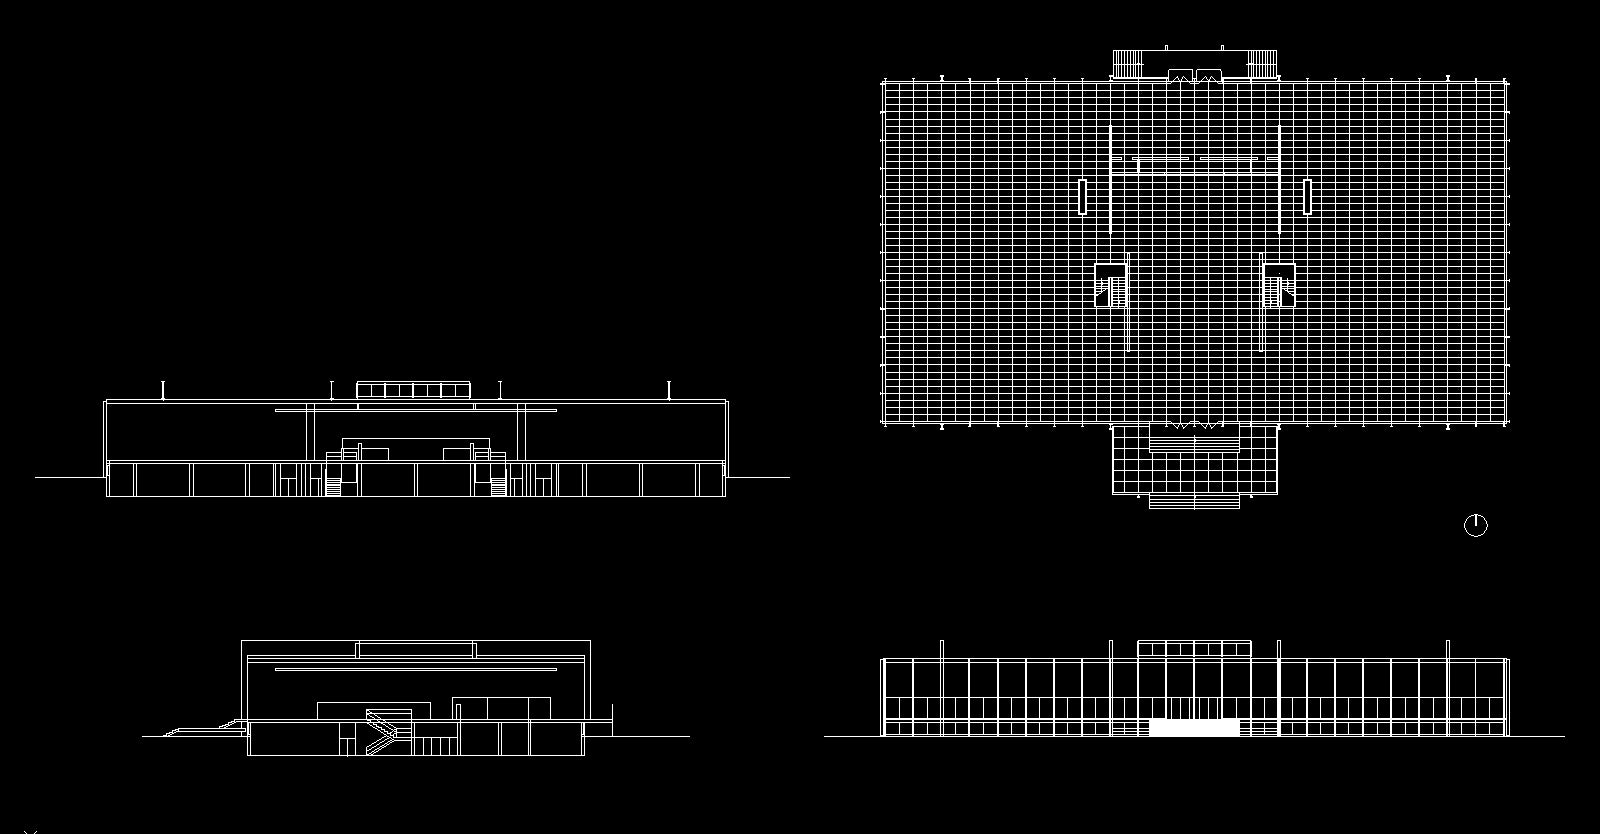 【Famous Architecture Project】Crown Hall- Ludwig Mies van der Rohe-CAD Drawings